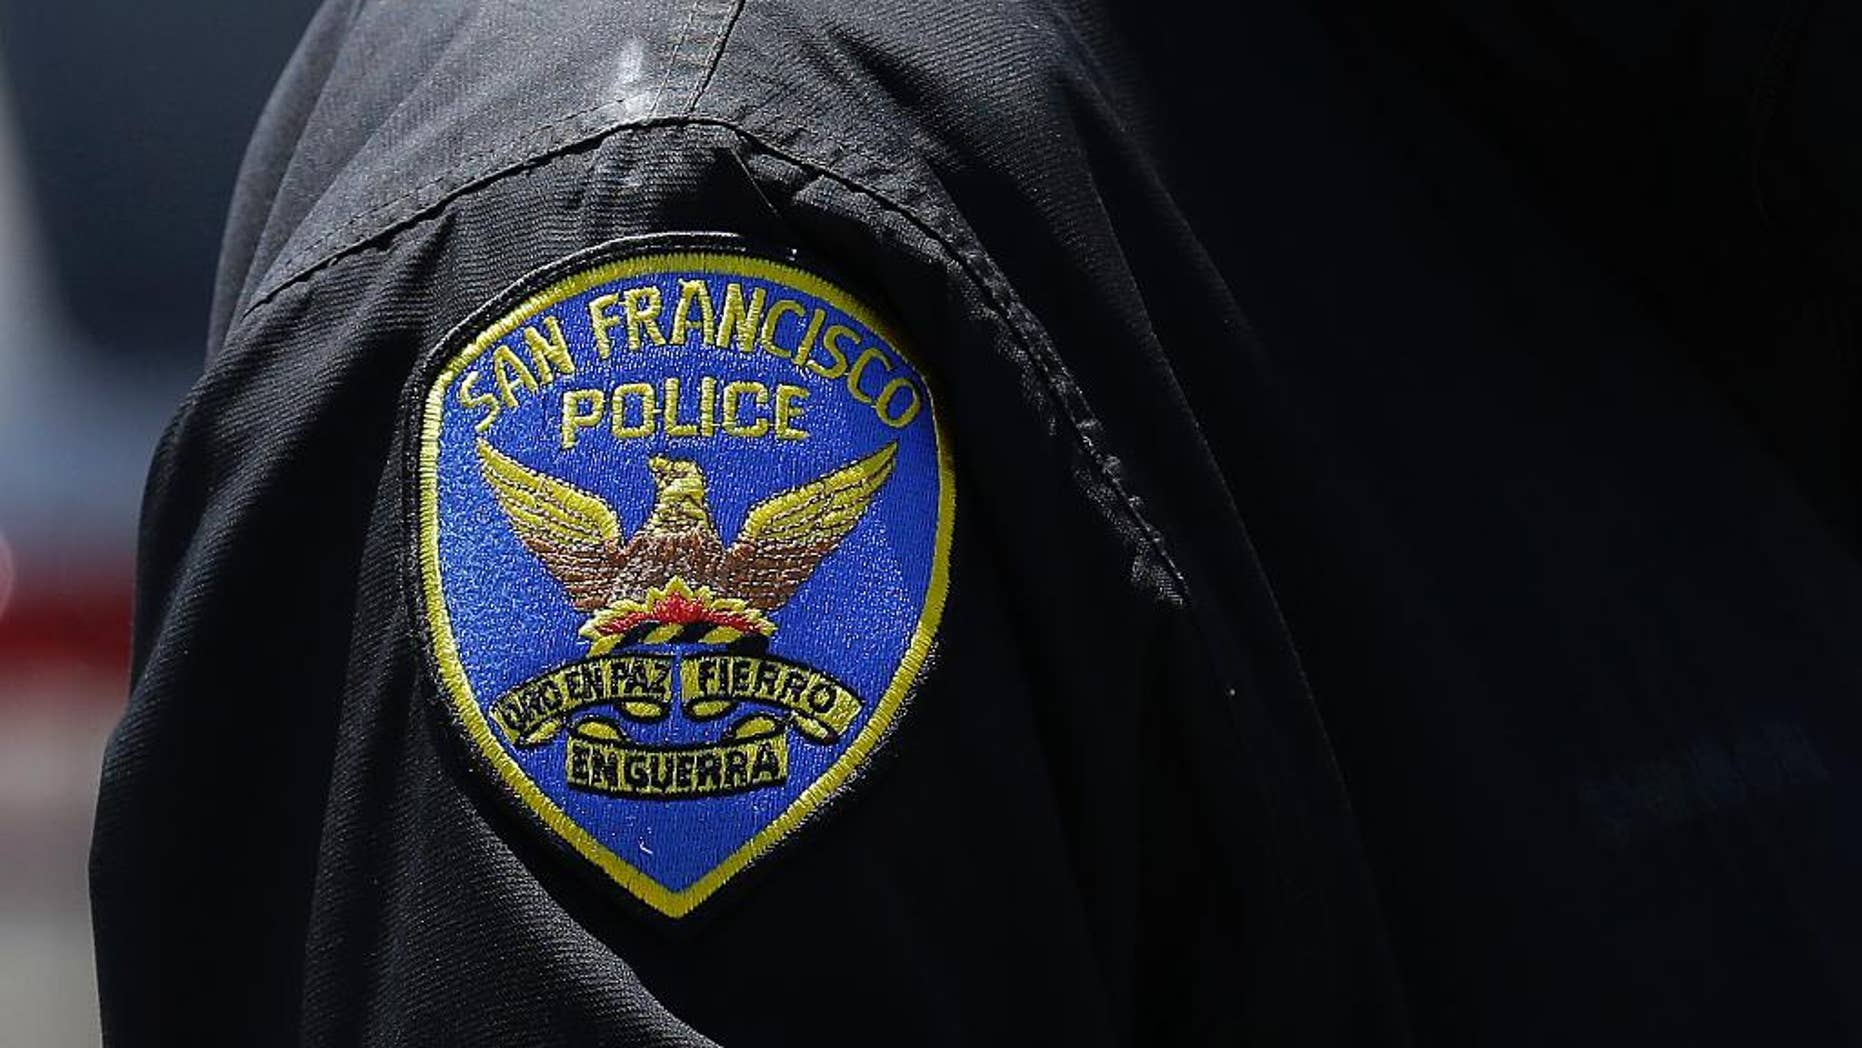 In this May 12, 2015 photo, a San Francisco Police officer stands on a street in San Francisco. The original charges were shocking enough: six San Francisco police officers were accused of stealing from suspects living in seedy residential hotels. Then federal prosecutors released racist, homophobic and ethnically insensitive email and text messages exchanged among more than a dozen officers, prompting the San Francisco district attorney to launch a wide-ranging investigation of the police department while considering dismissing up to 3,000 criminal cases involving the officers. (AP Photo/Jeff Chiu)